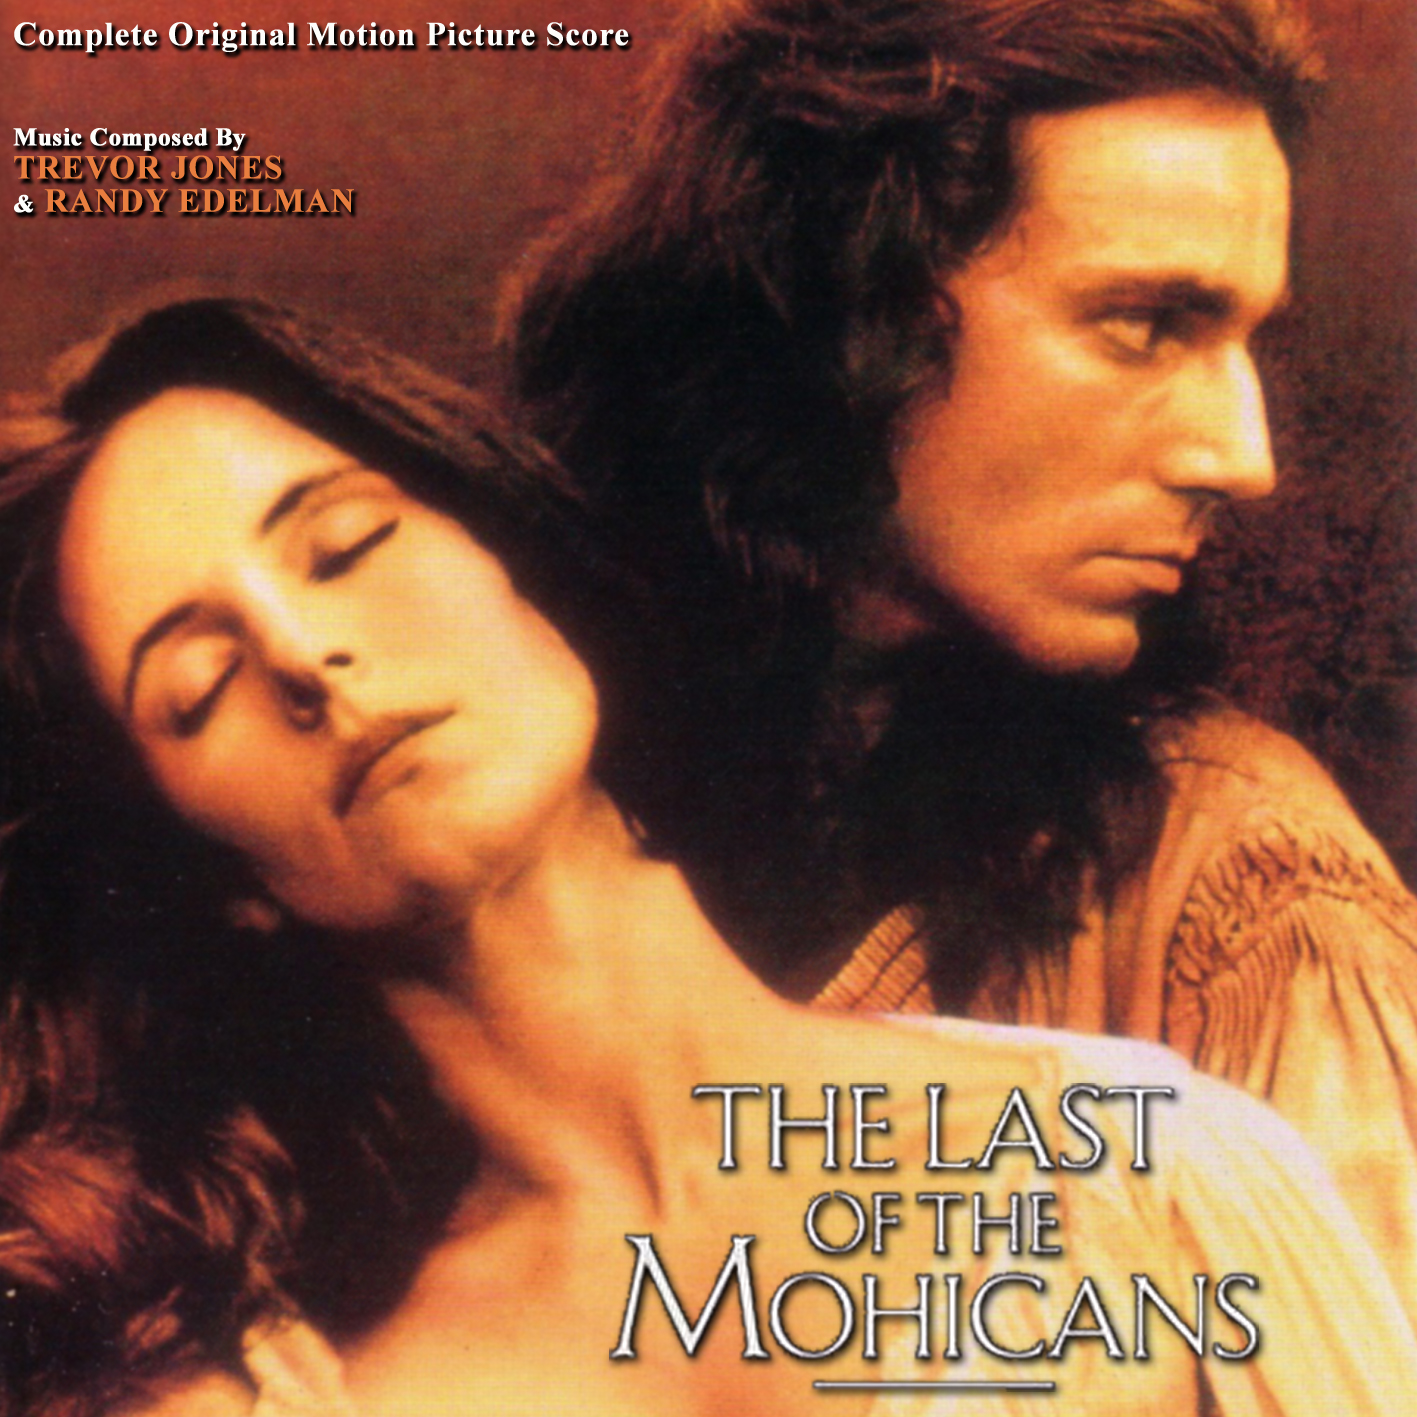 a literary analysis of men in last of the mohicans The last of the mohicans:  but webb refused to send any of his estimated 1,600 men north because they were all  the last of the mohicans literary themes for.